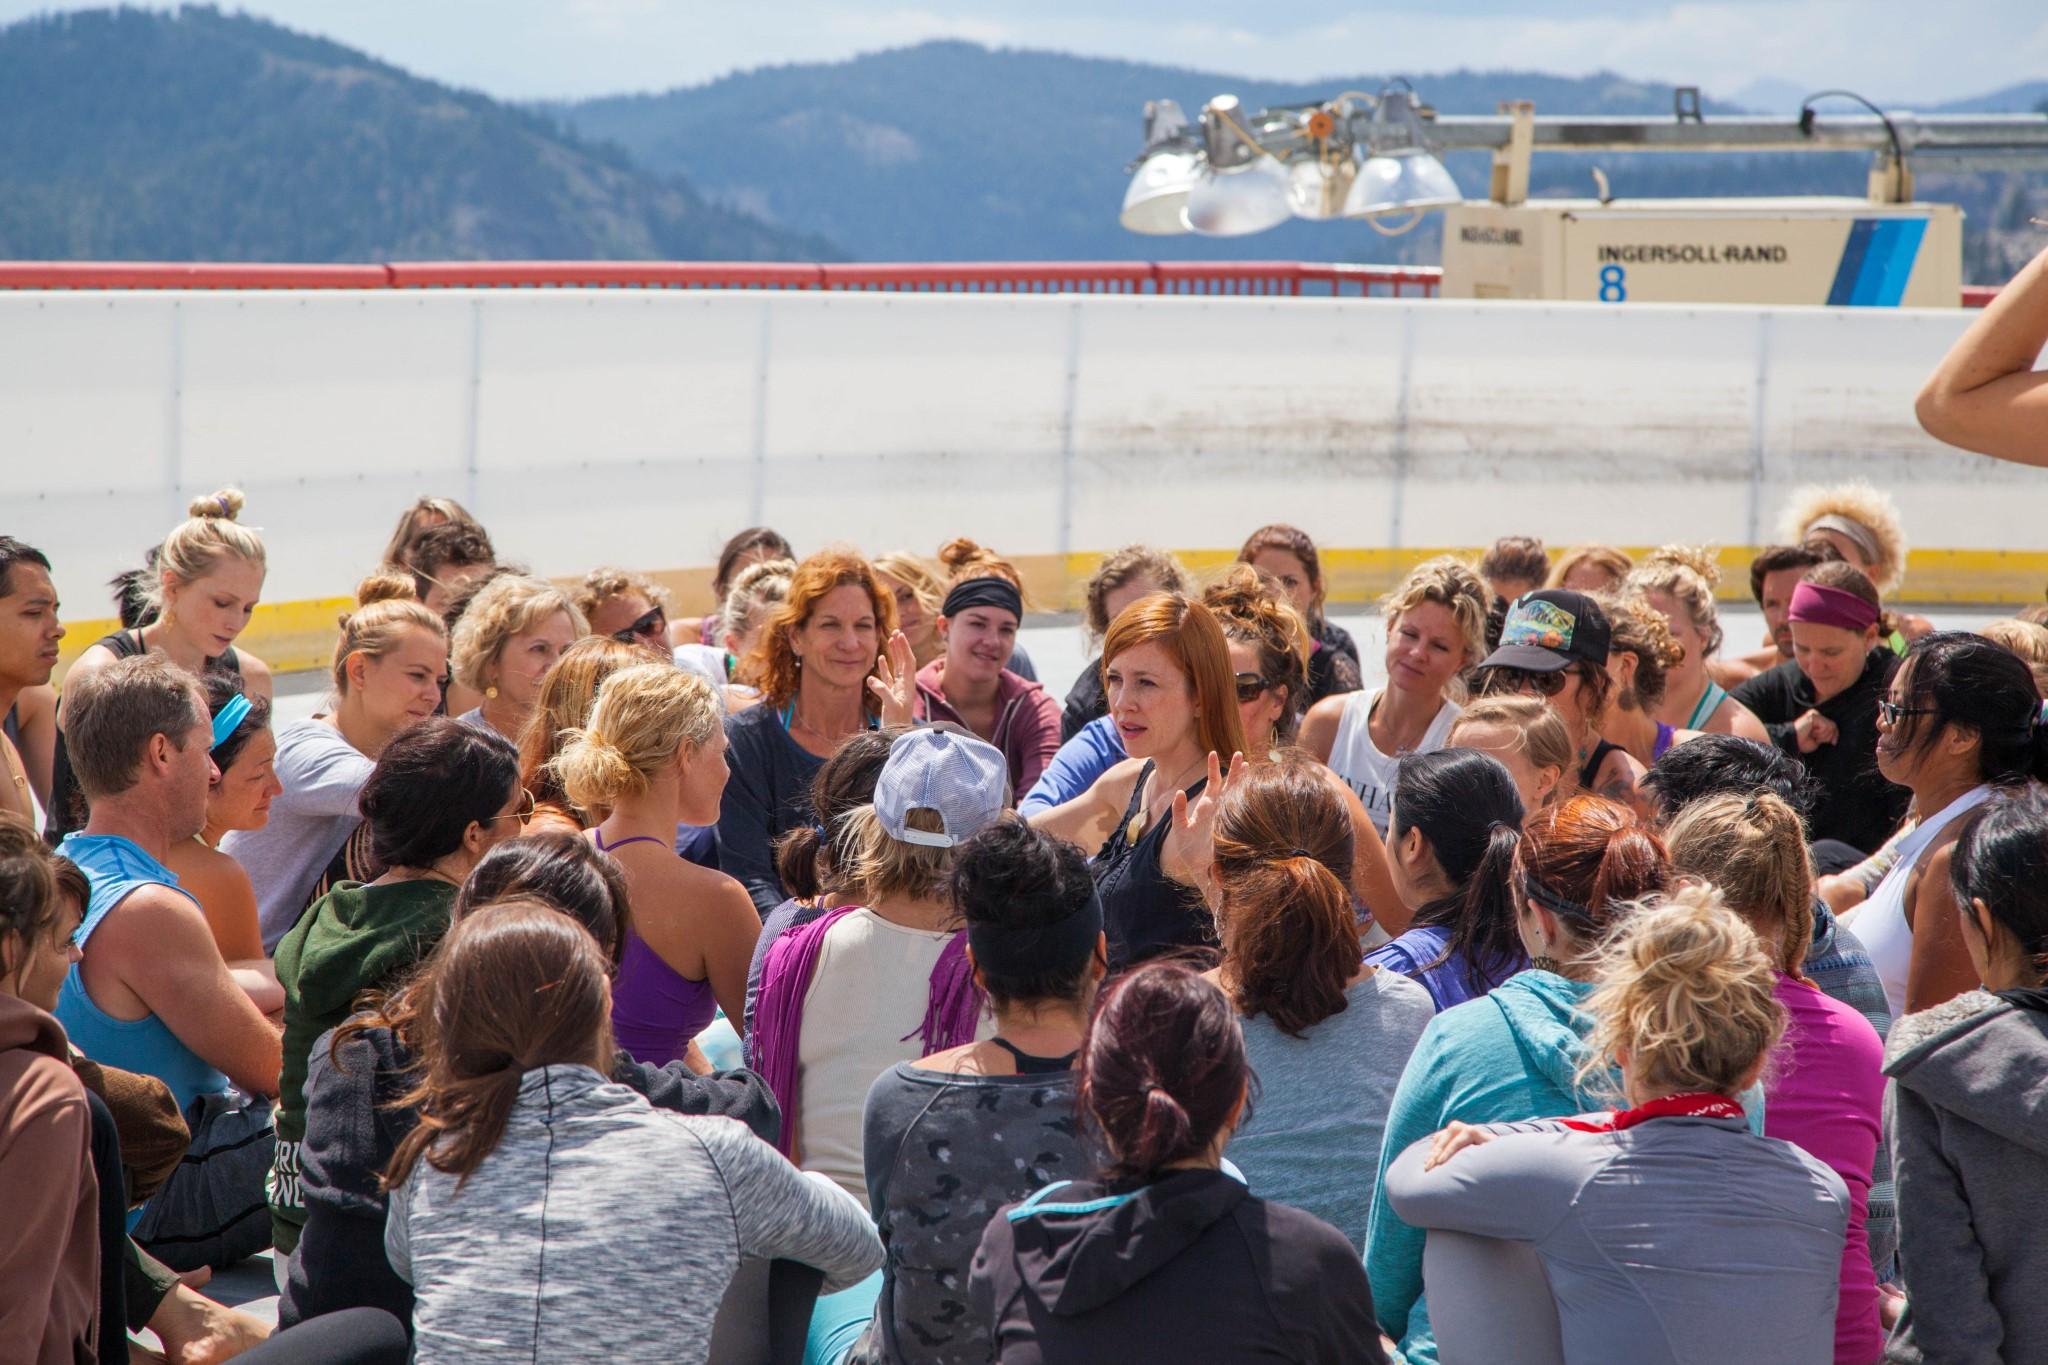 HANNAHtalks with pupils after our yoga class in the ice rink atop the mountain.